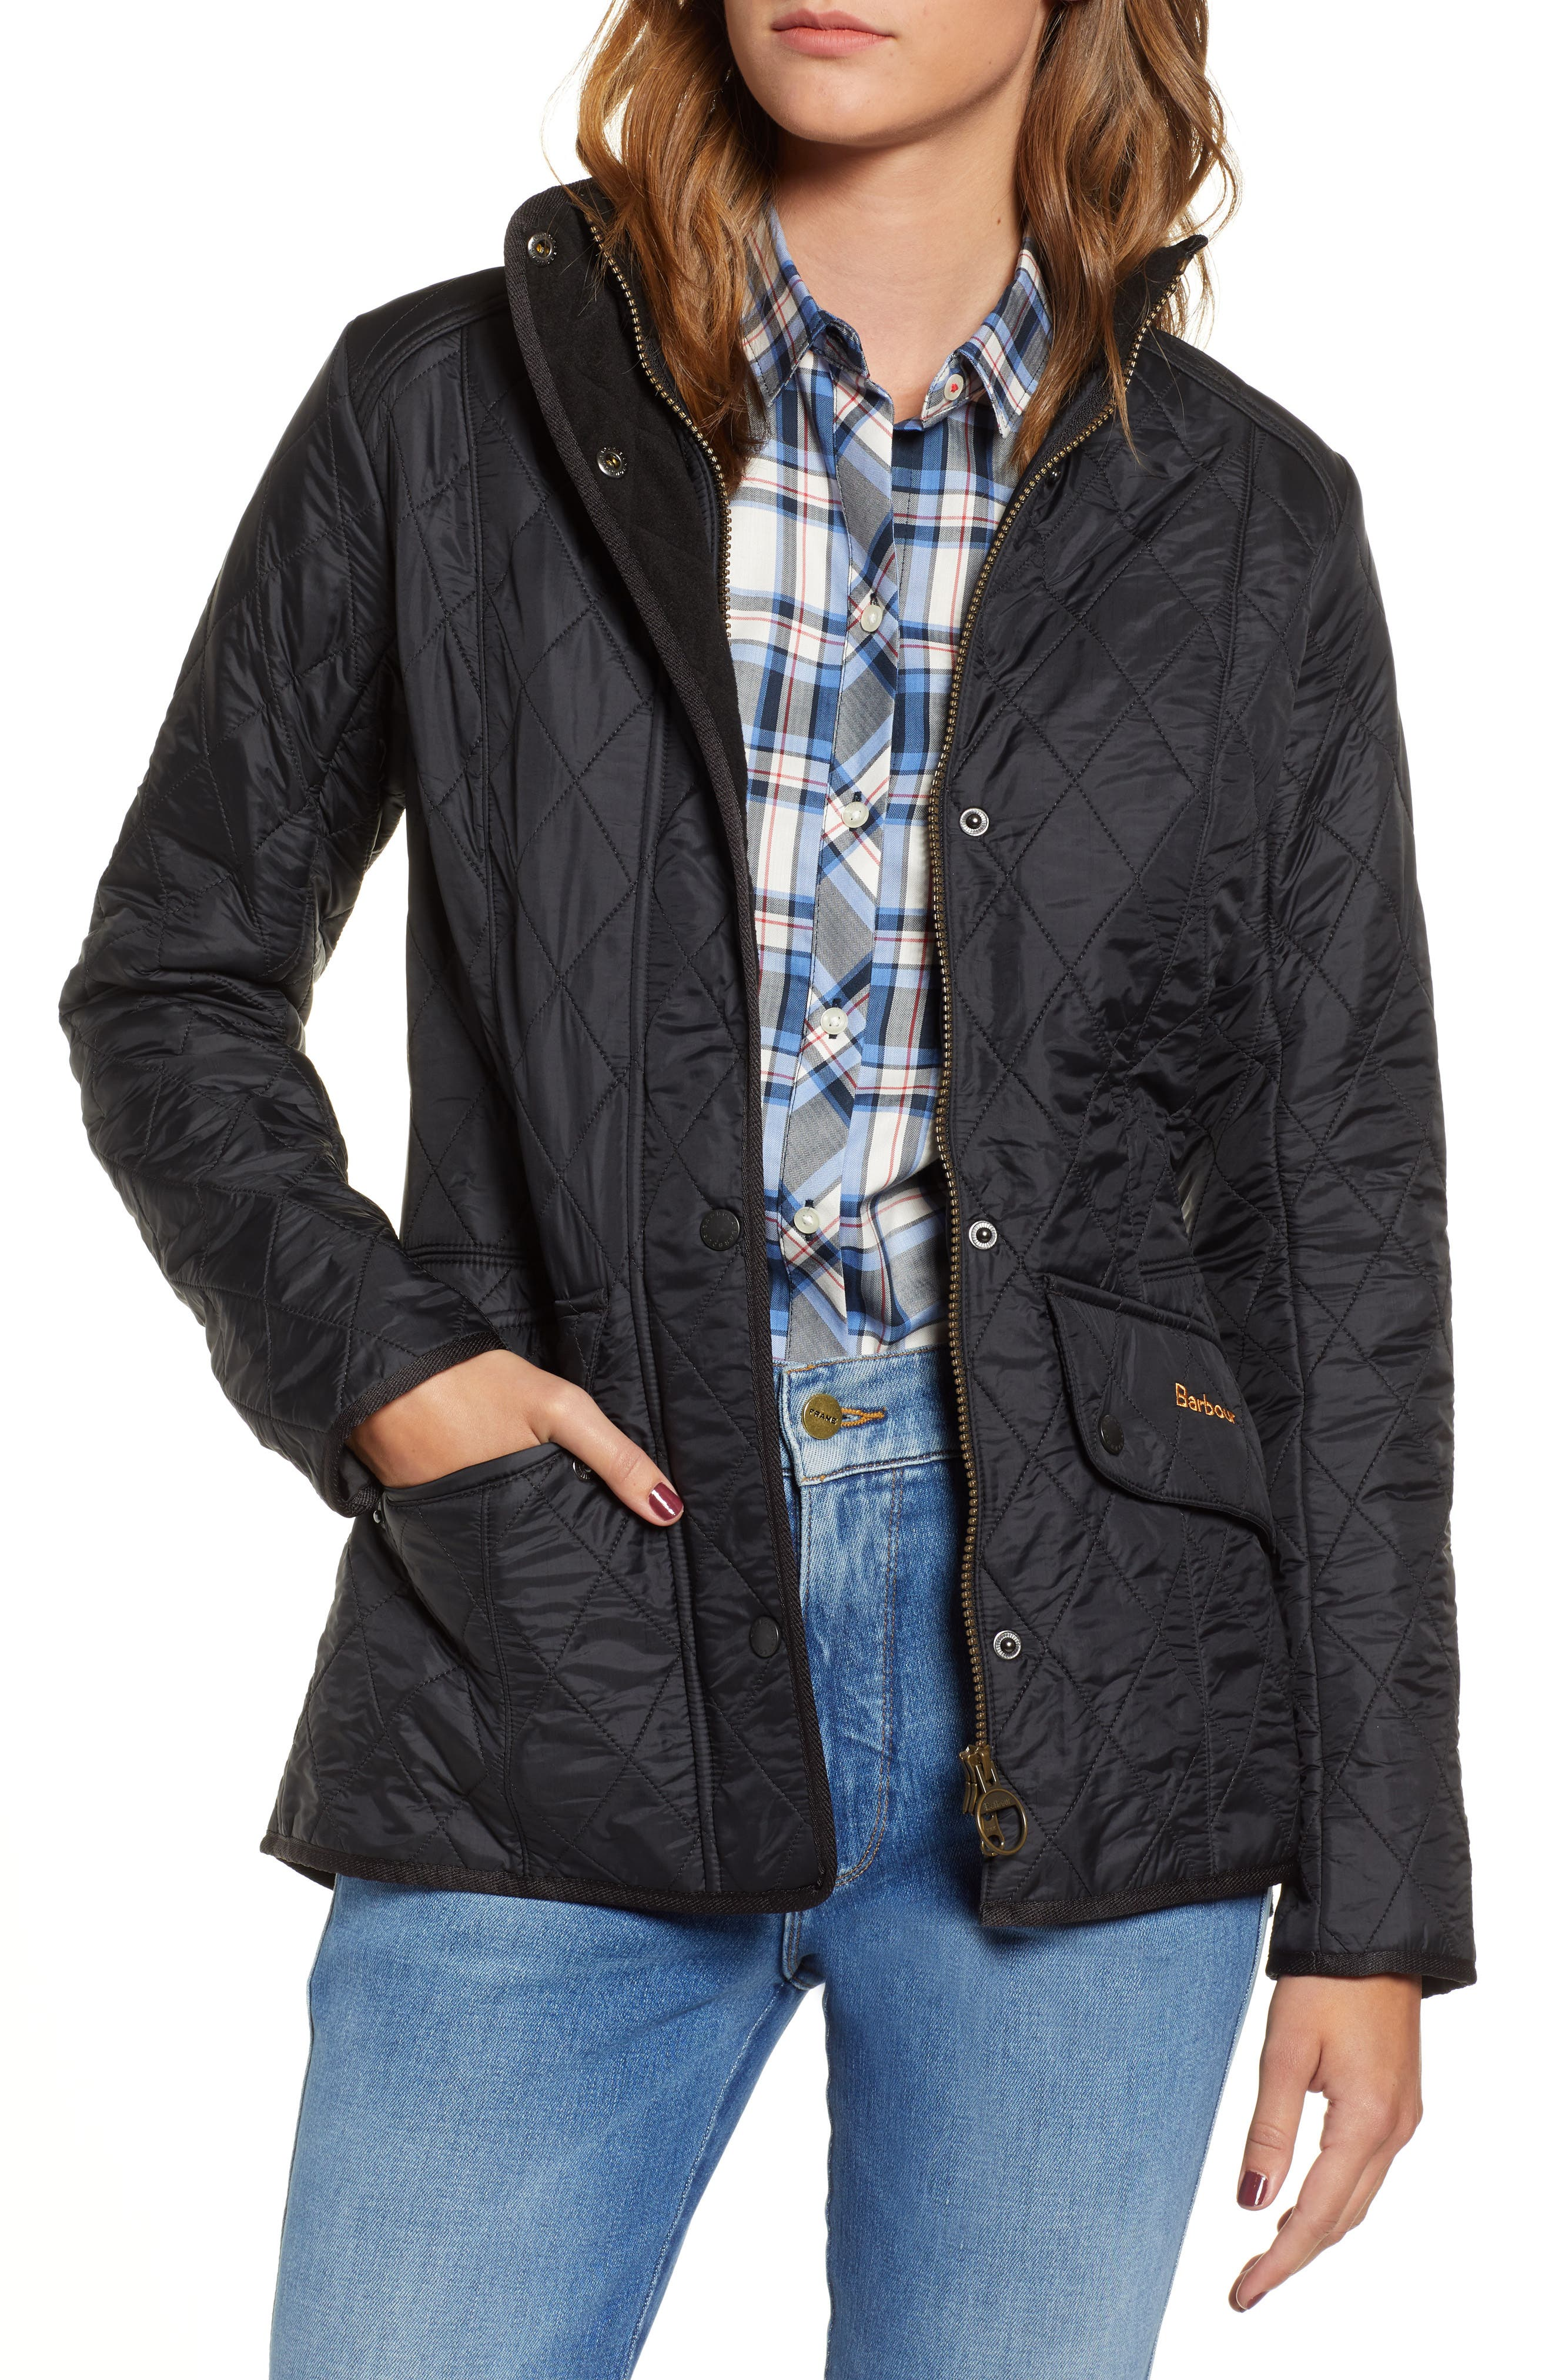 BARBOUR, 'Cavalry' Quilted Jacket, Main thumbnail 1, color, 001